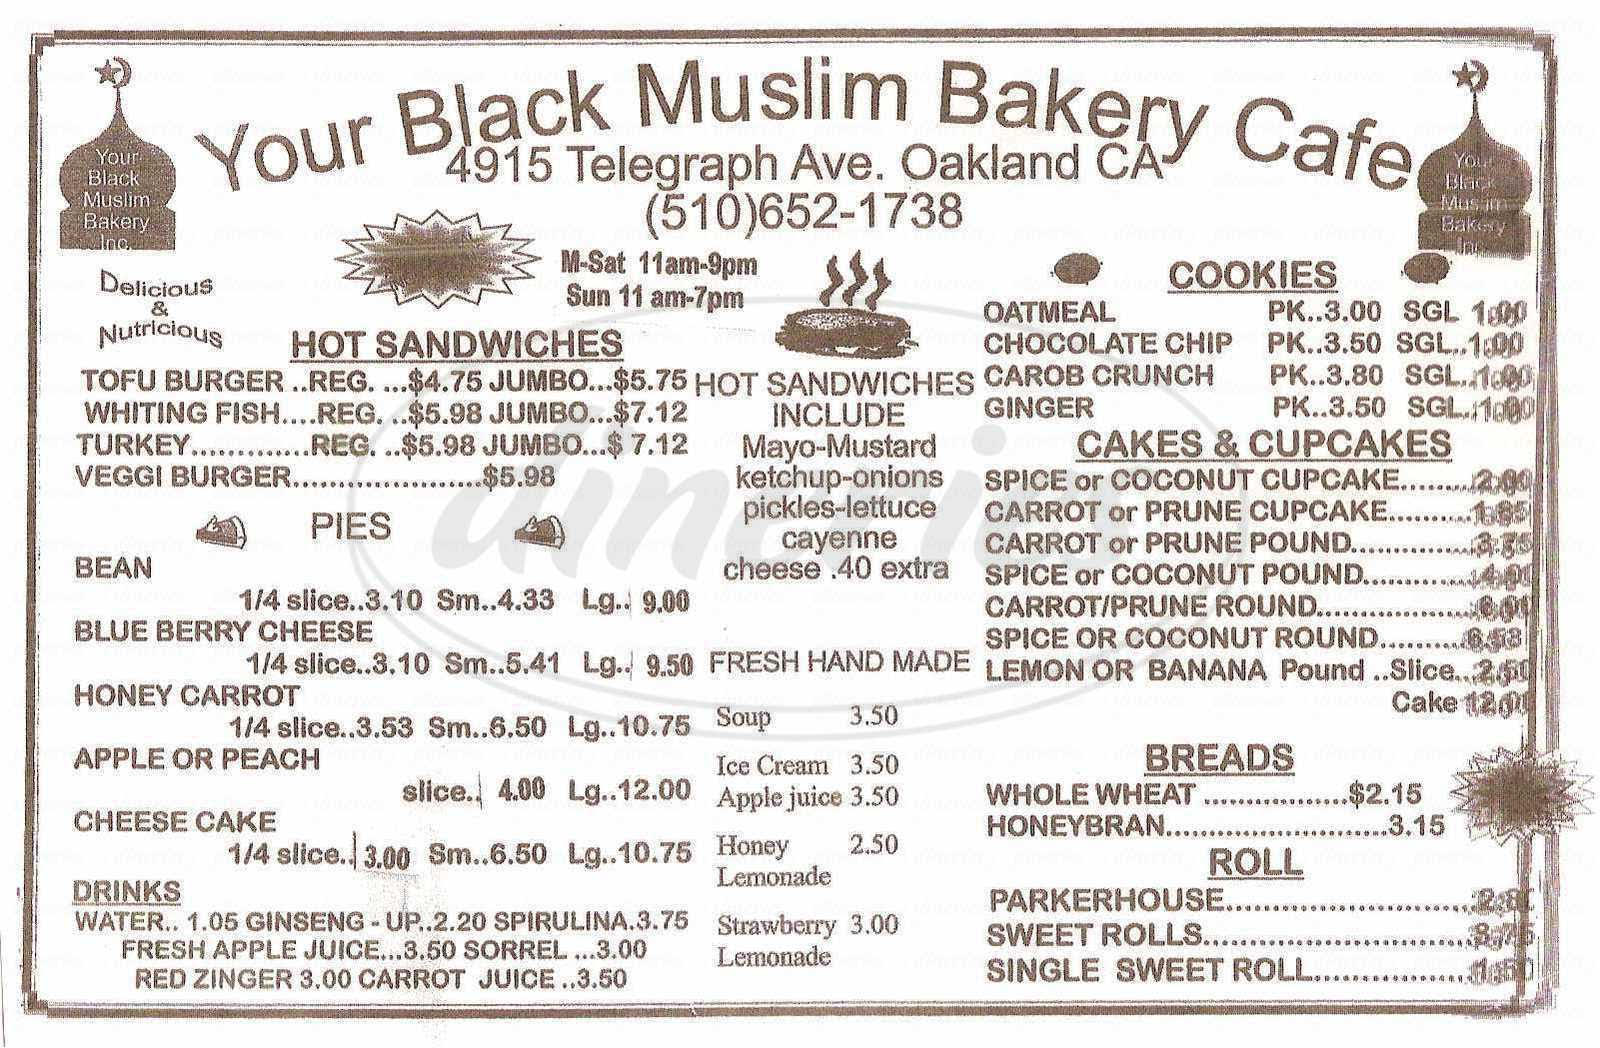 Cooking Time Conversion Chart: Your Black Muslim Bakery - Wikipedia,Chart